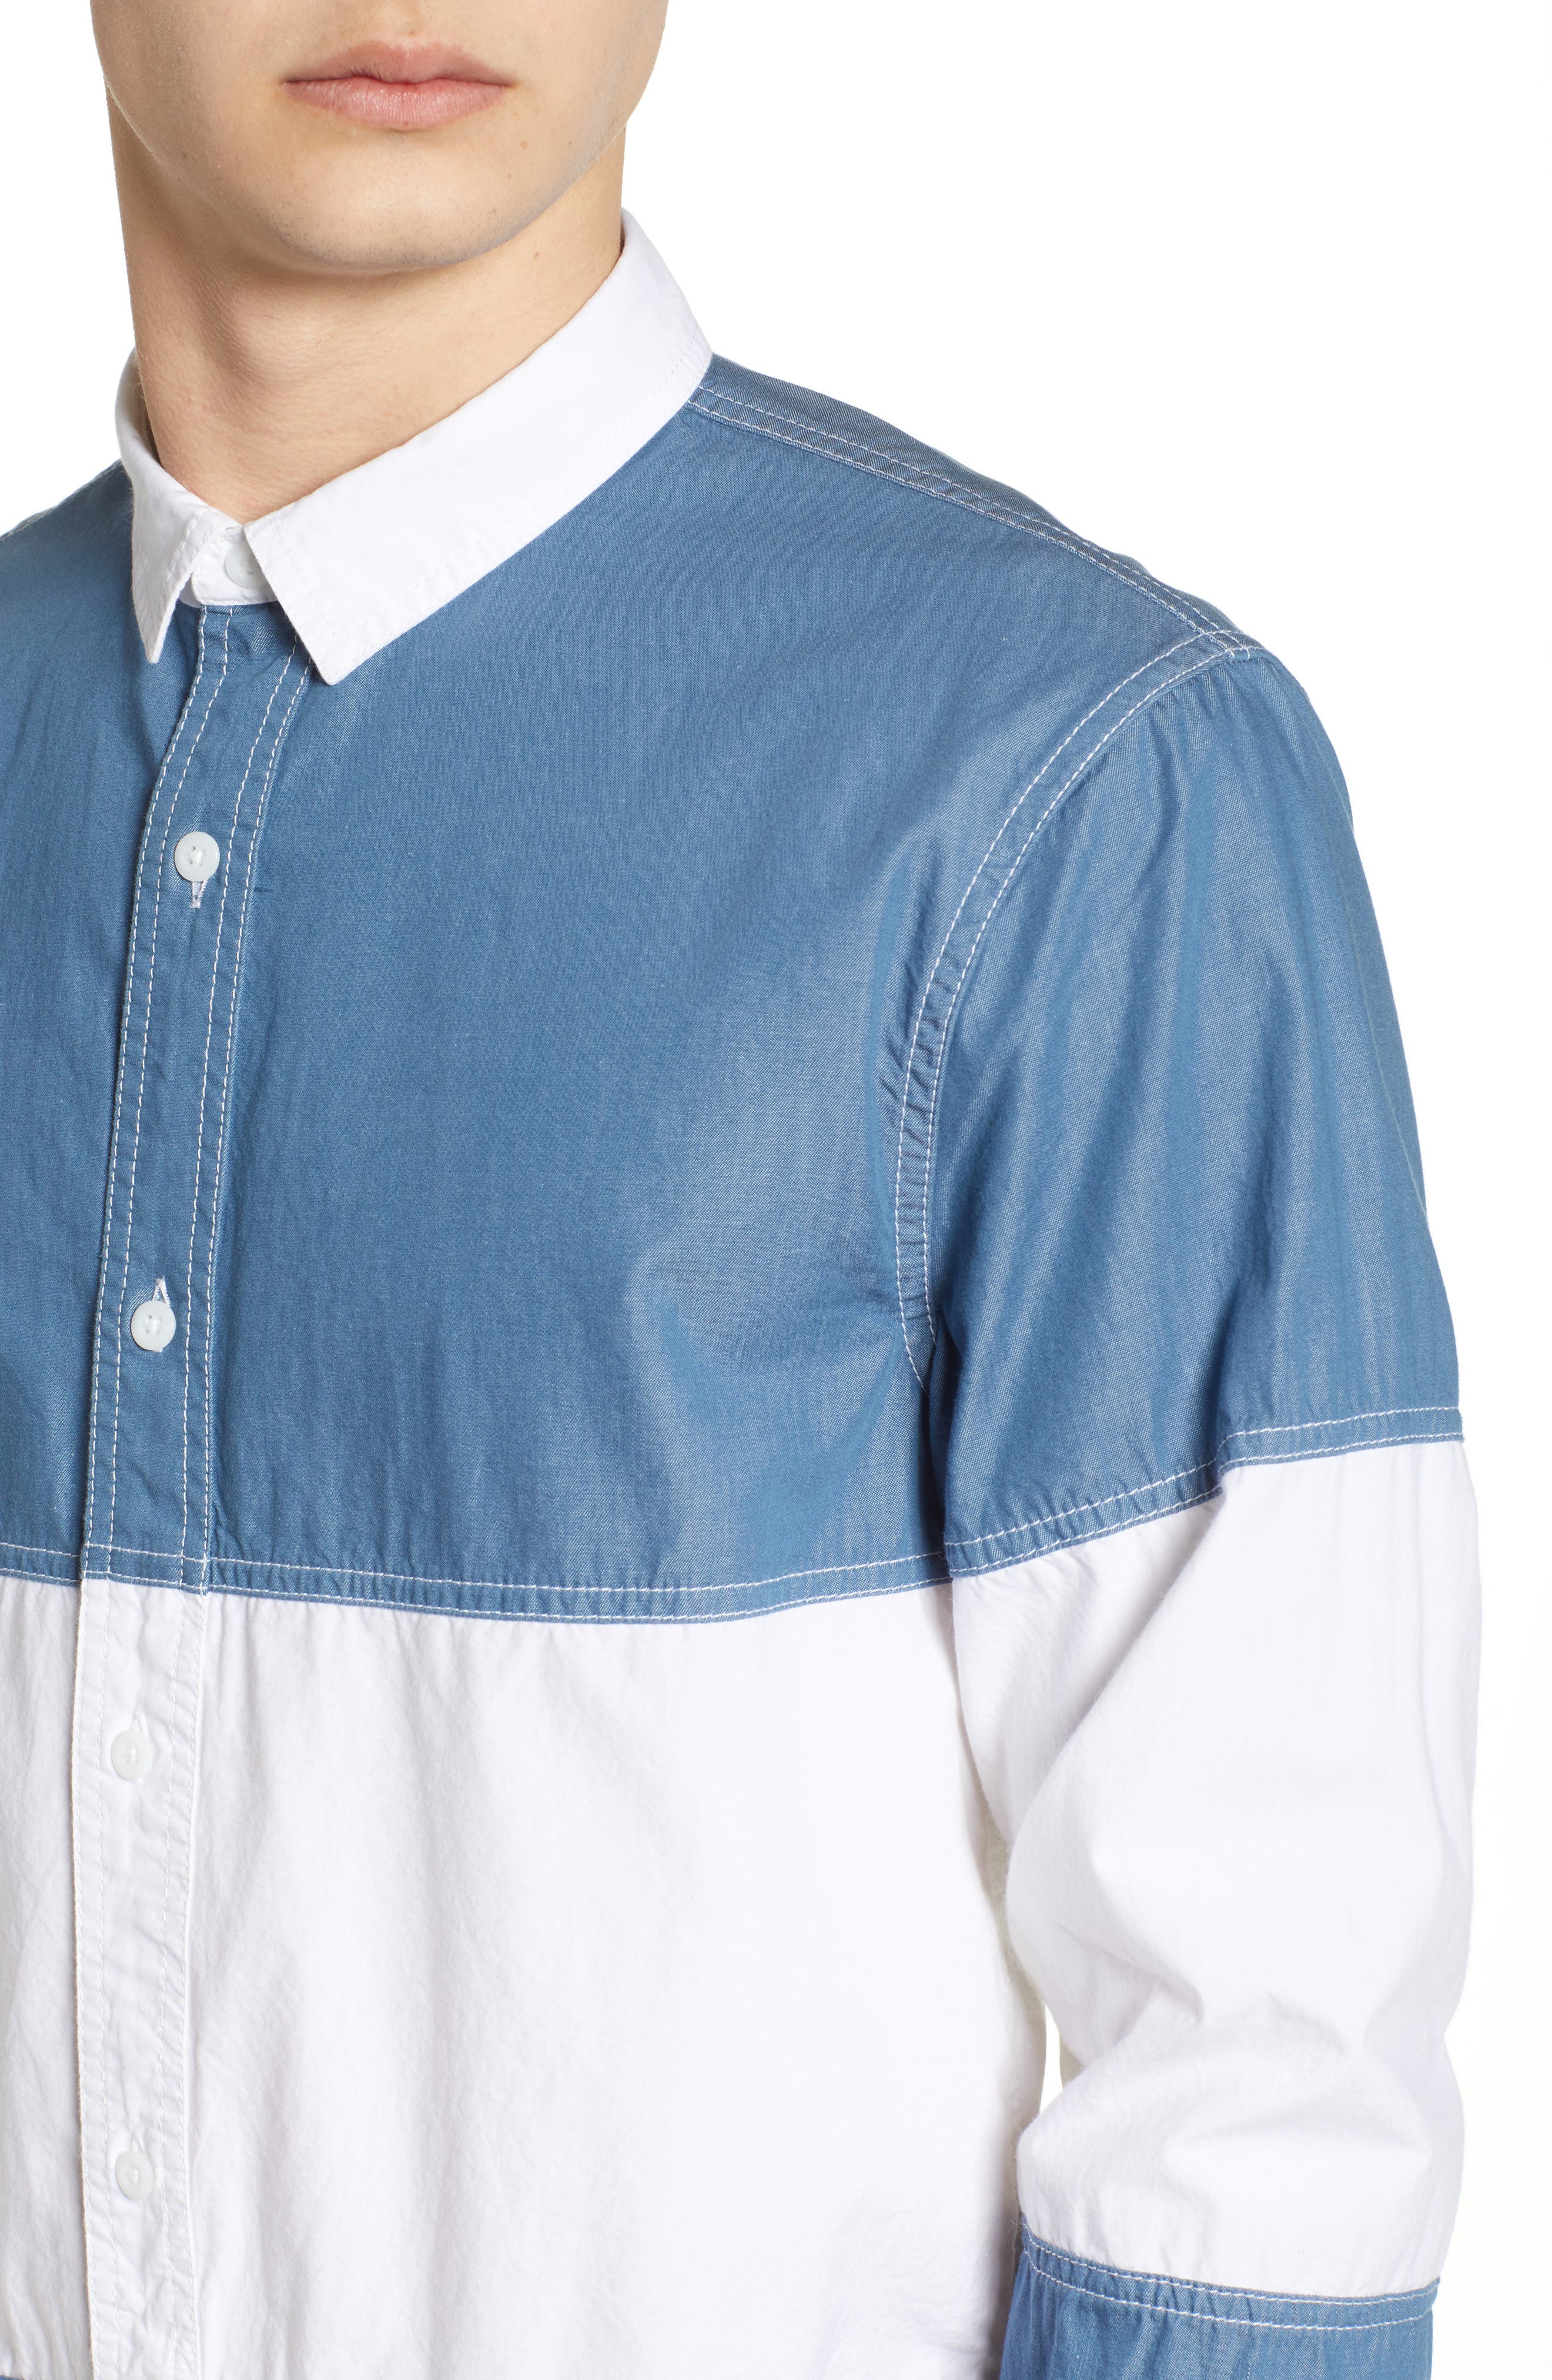 Colorblock Woven Shirt,                             Alternate thumbnail 4, color,                             Chambray White Block